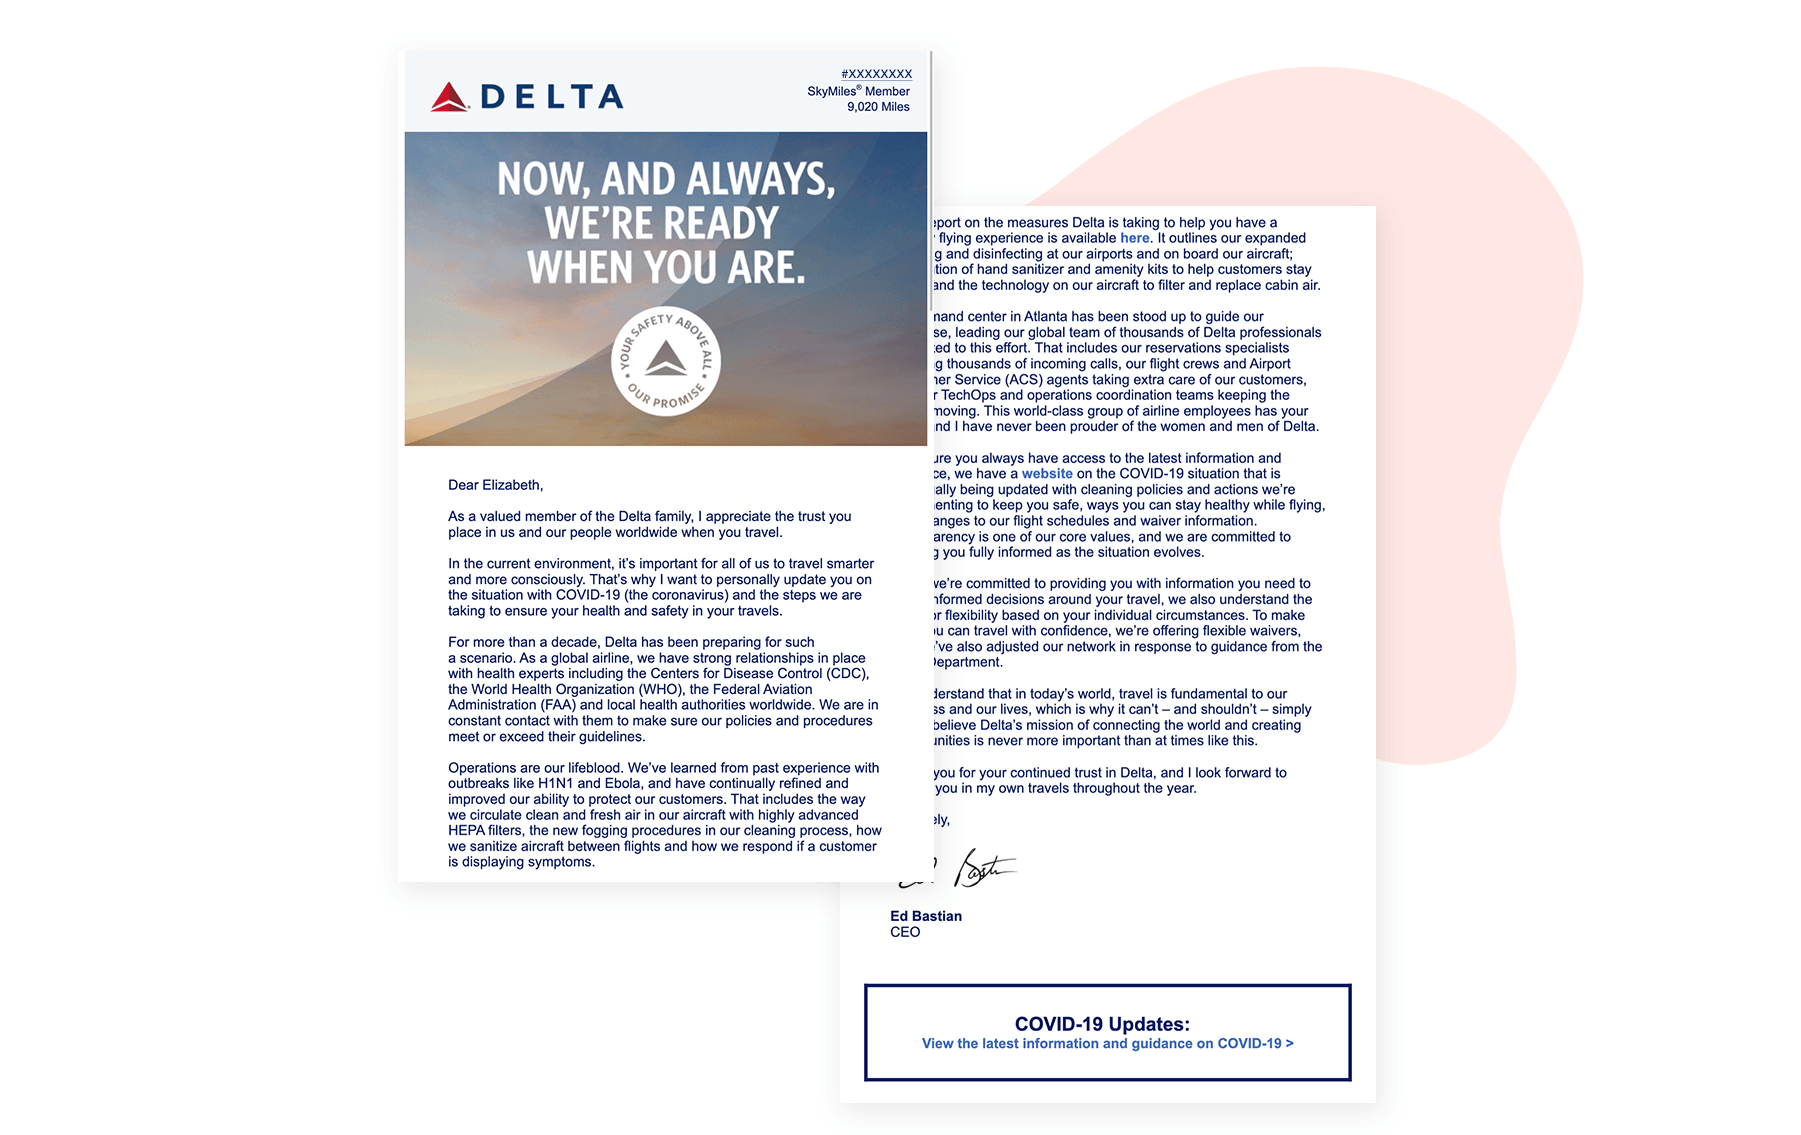 Delta plain text email example